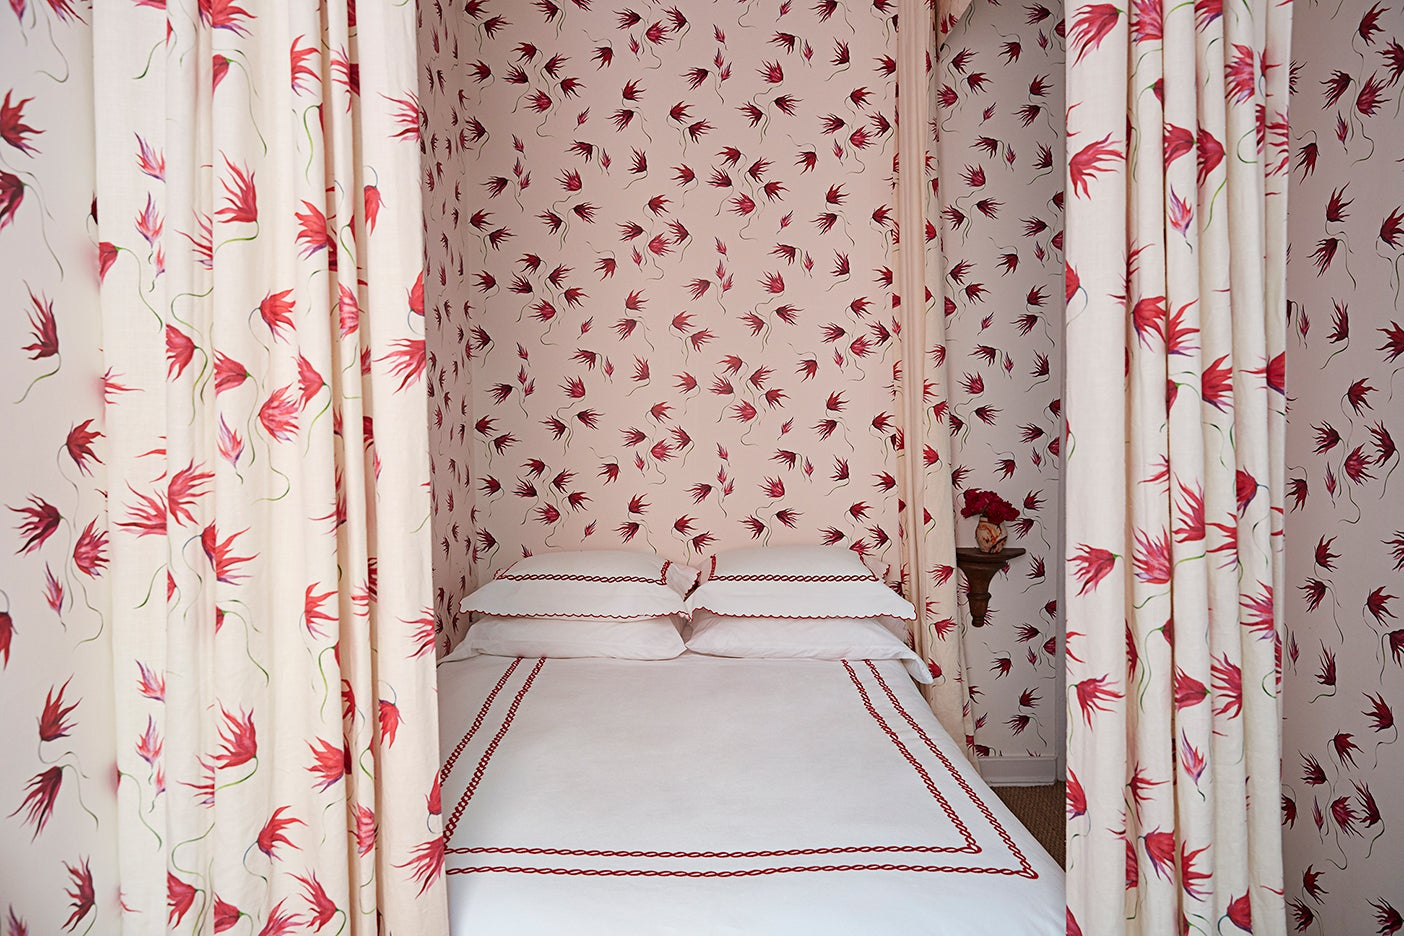 Red bed canopy